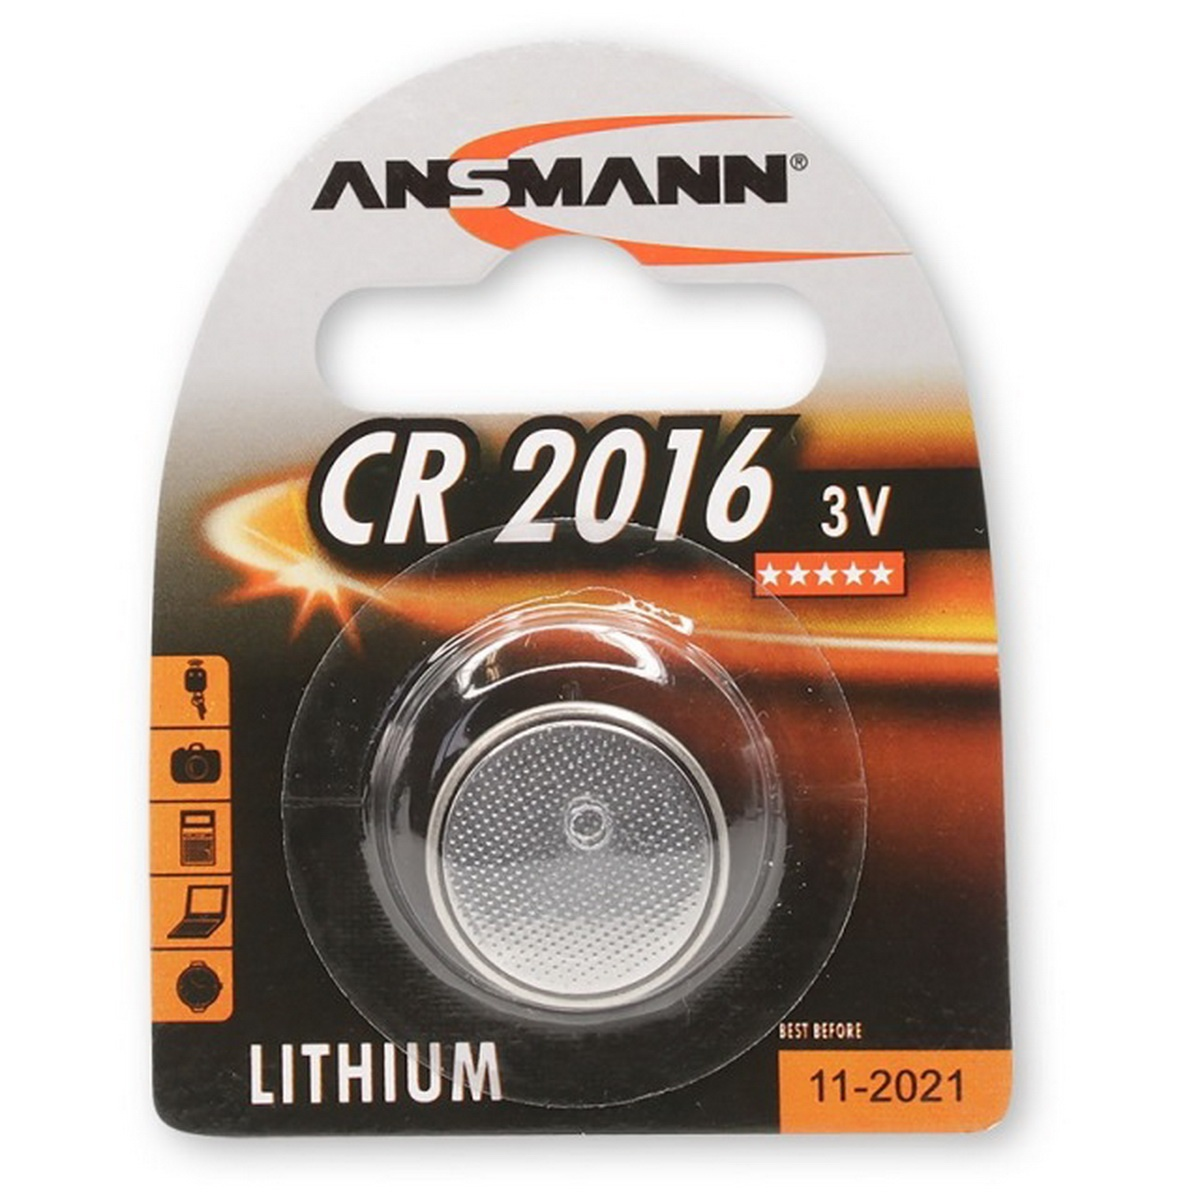 Knopfzelle Lithium CR 2016 3V - 90 mA